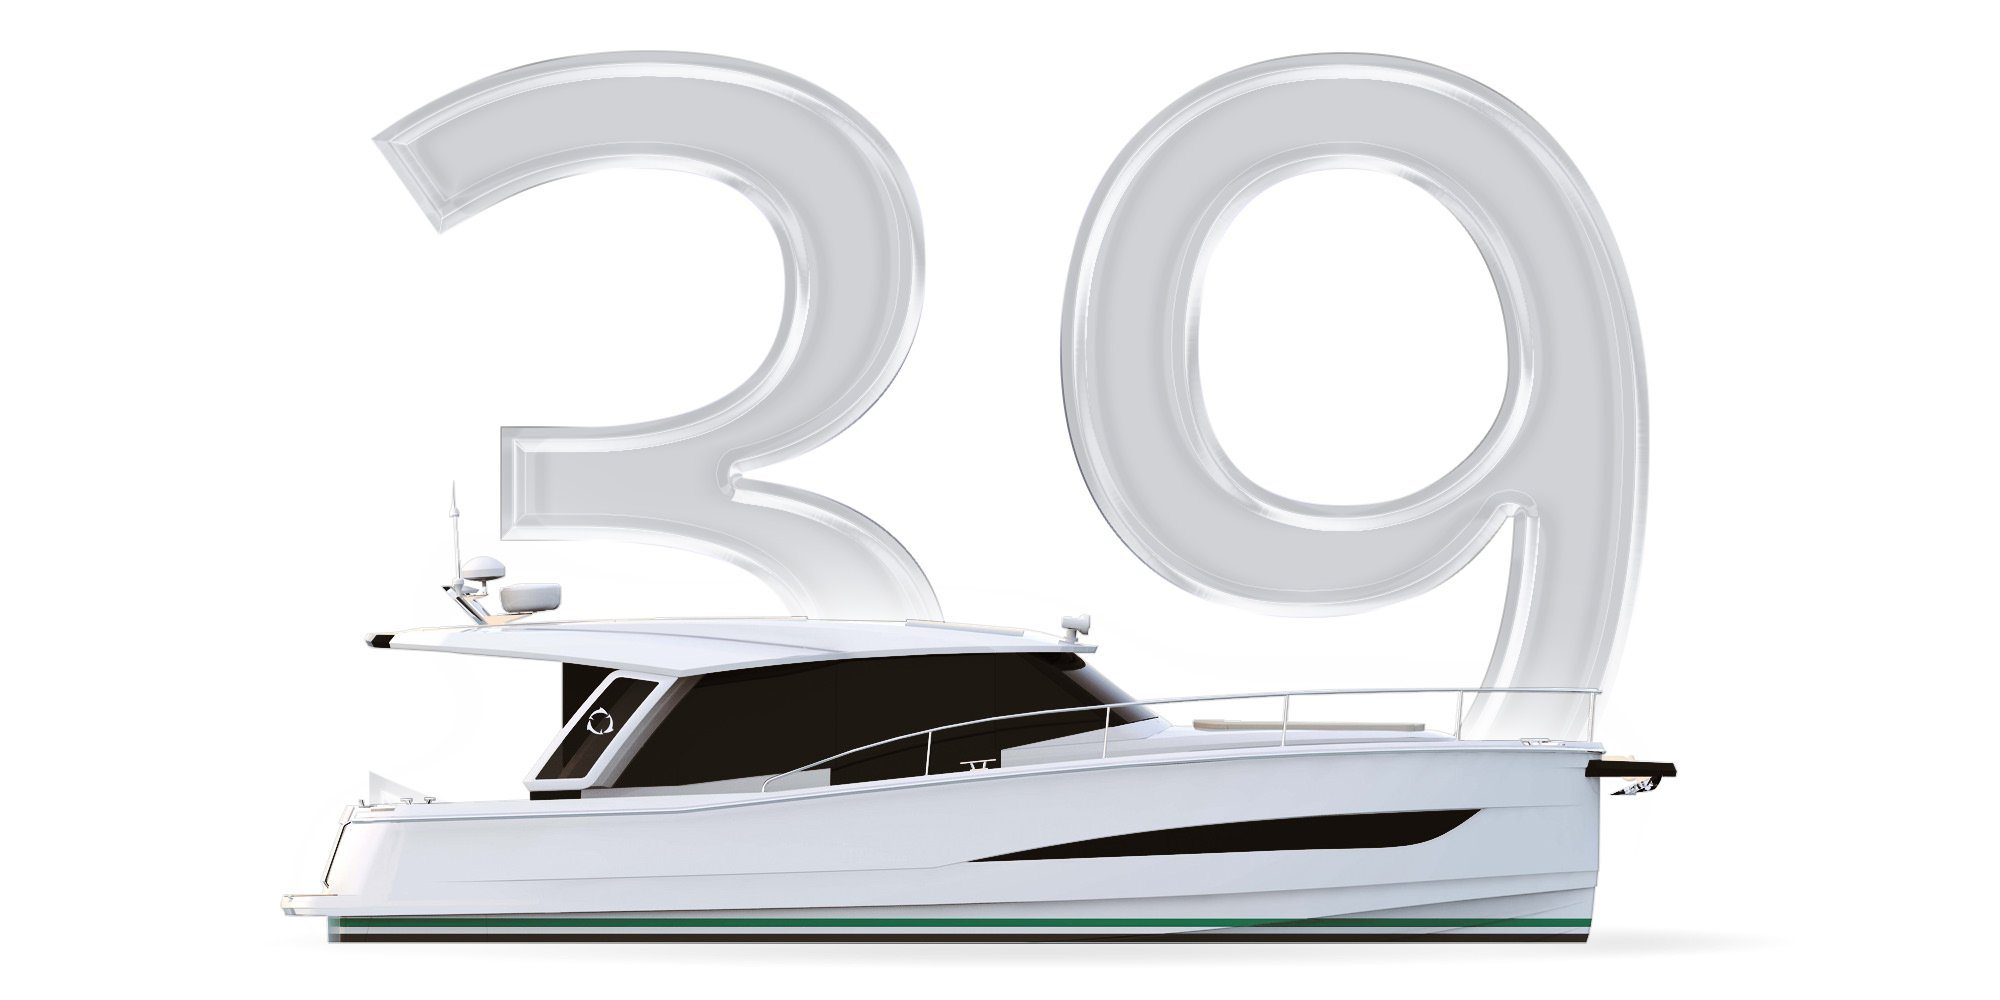 A Modern Fast Cruiser . Here you see a Thumbnail with the number 39 and a graphically represented Yacht of the Greenline Class 39. A Slider over the thumbnail shows the following information about the Greenline 39: Length overall: 11,99m Beam overall: 3,75m Base Price: 245.850,00€